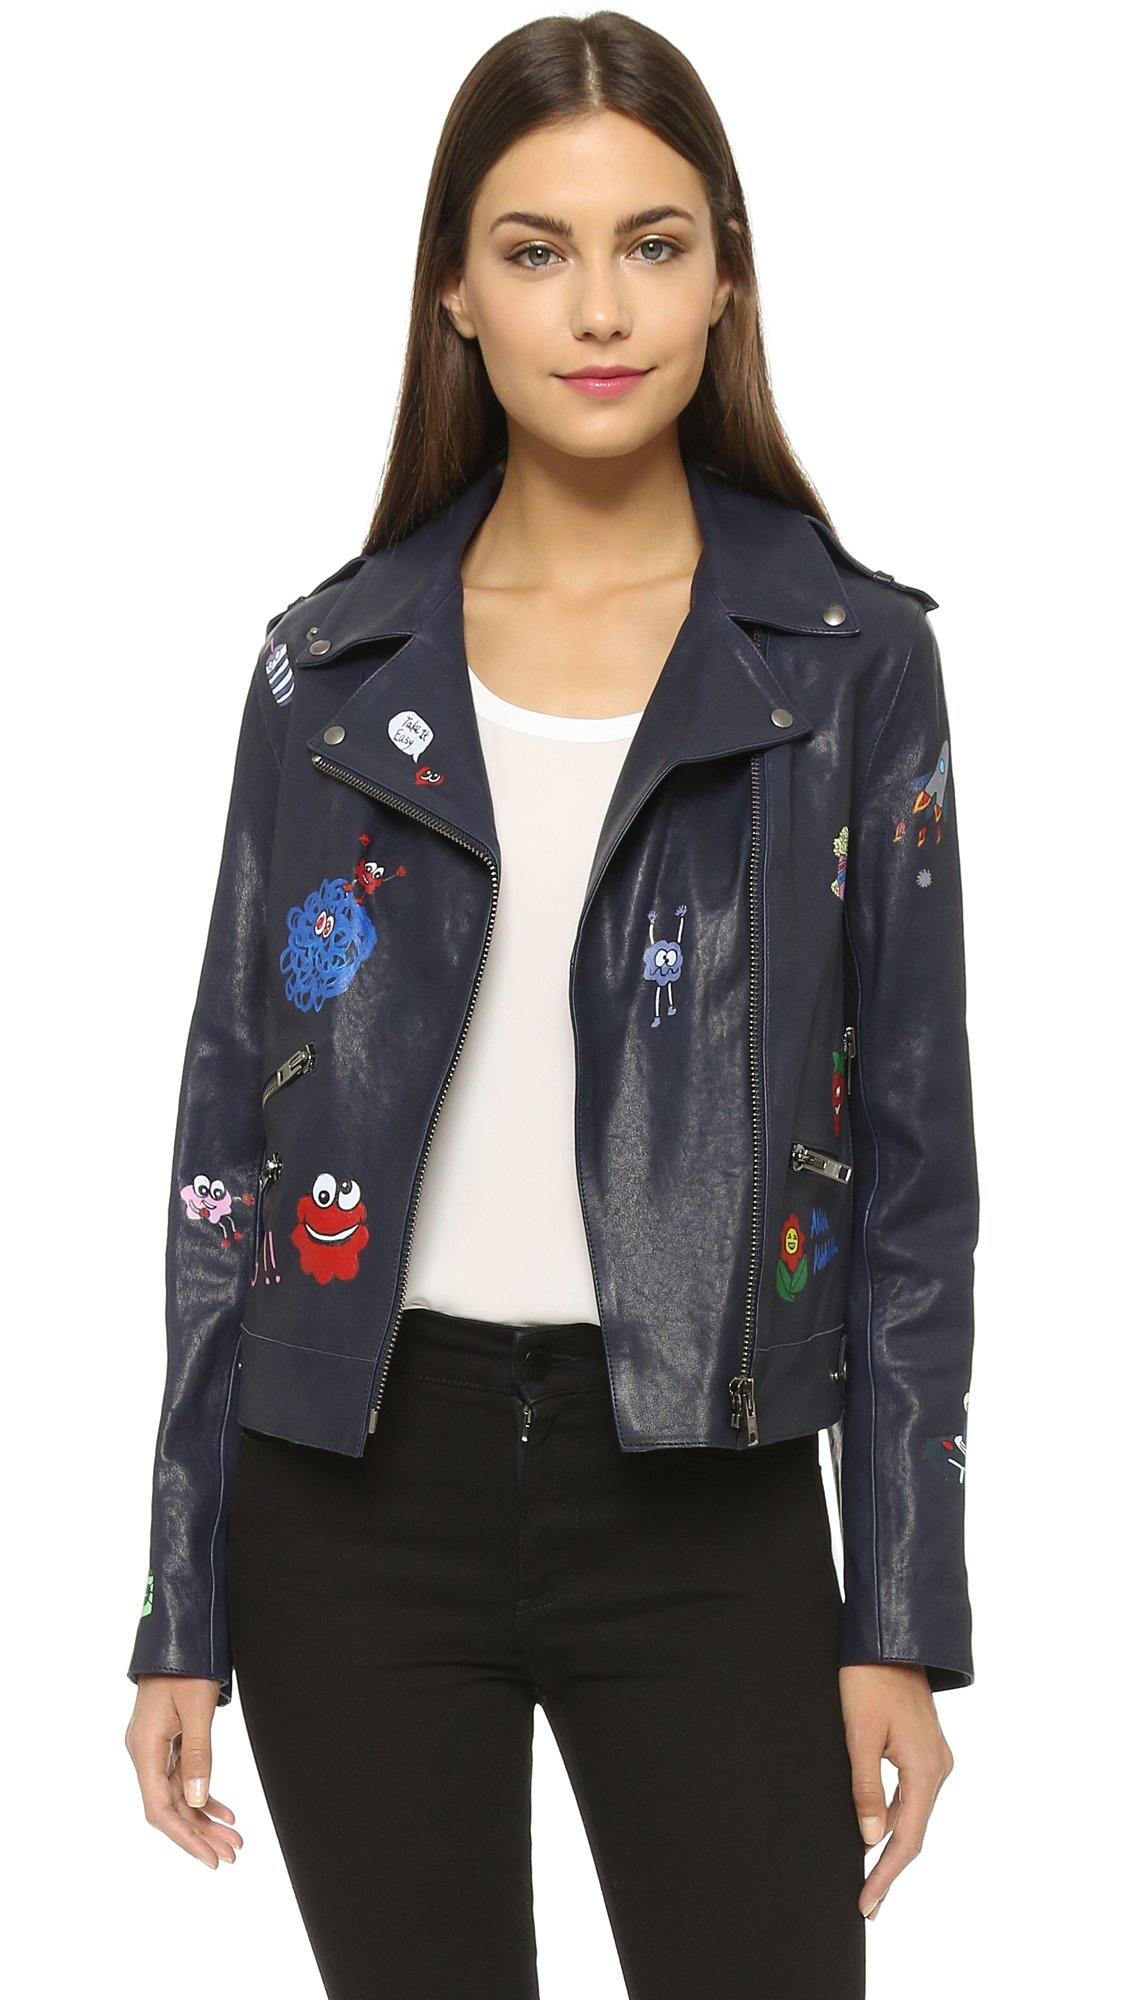 Painted leather jackets